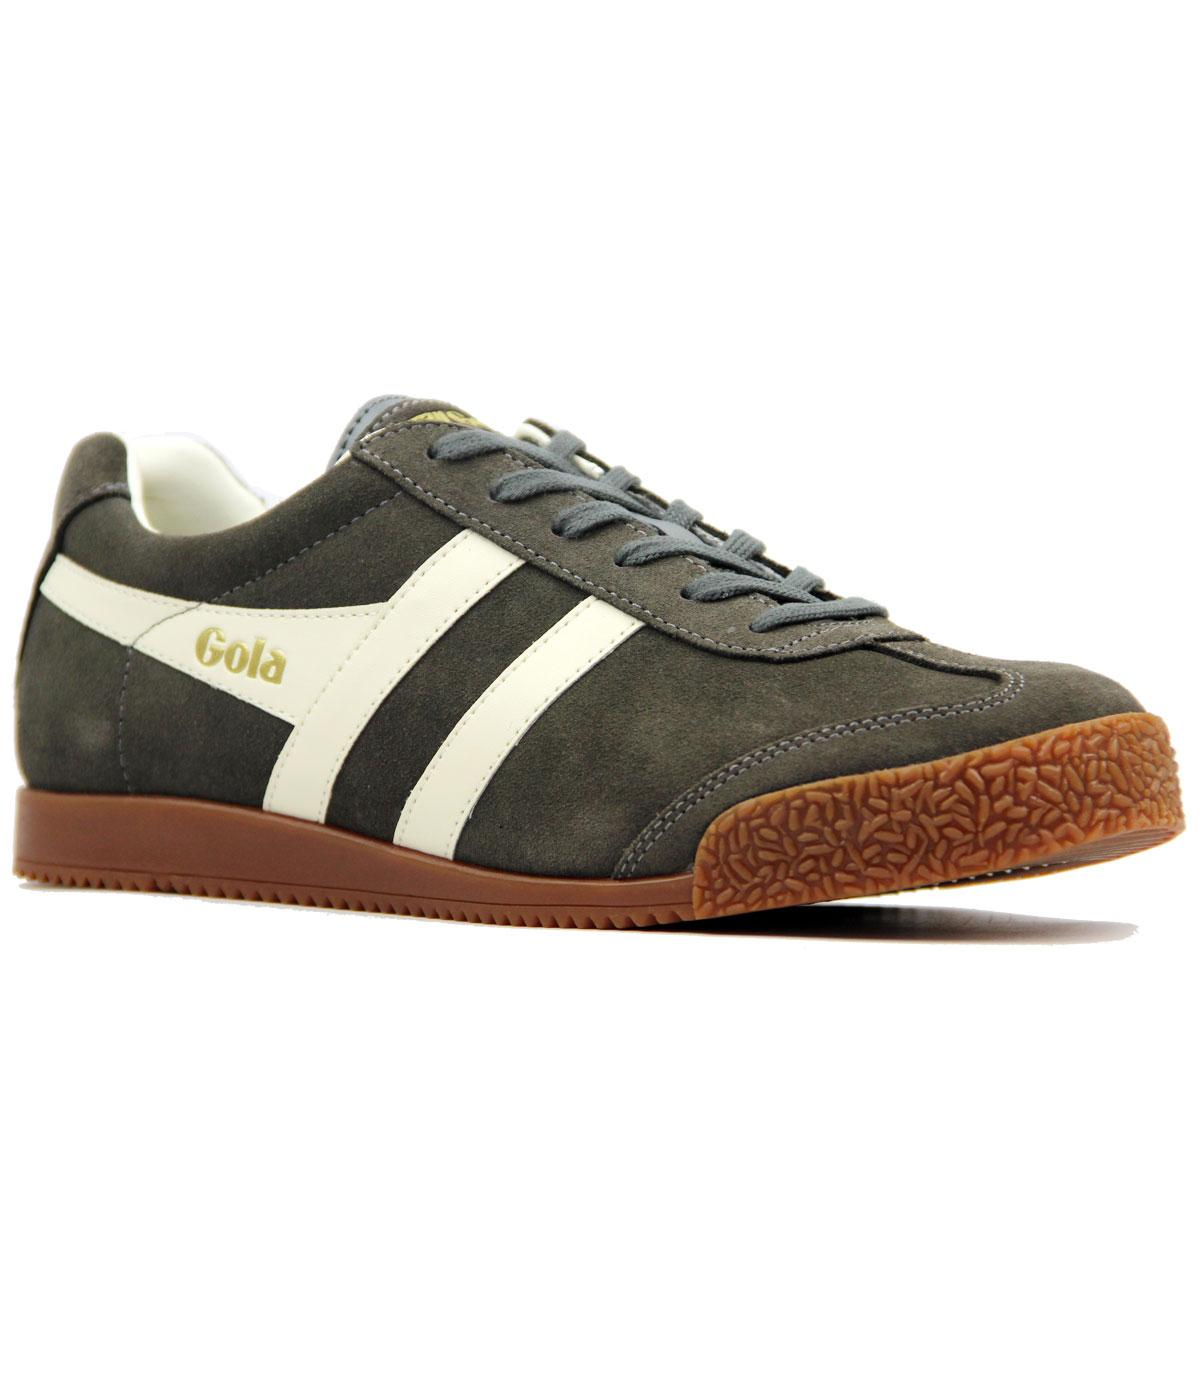 GOLA Harrier Premium Suede Retro Trainers (D GREY)